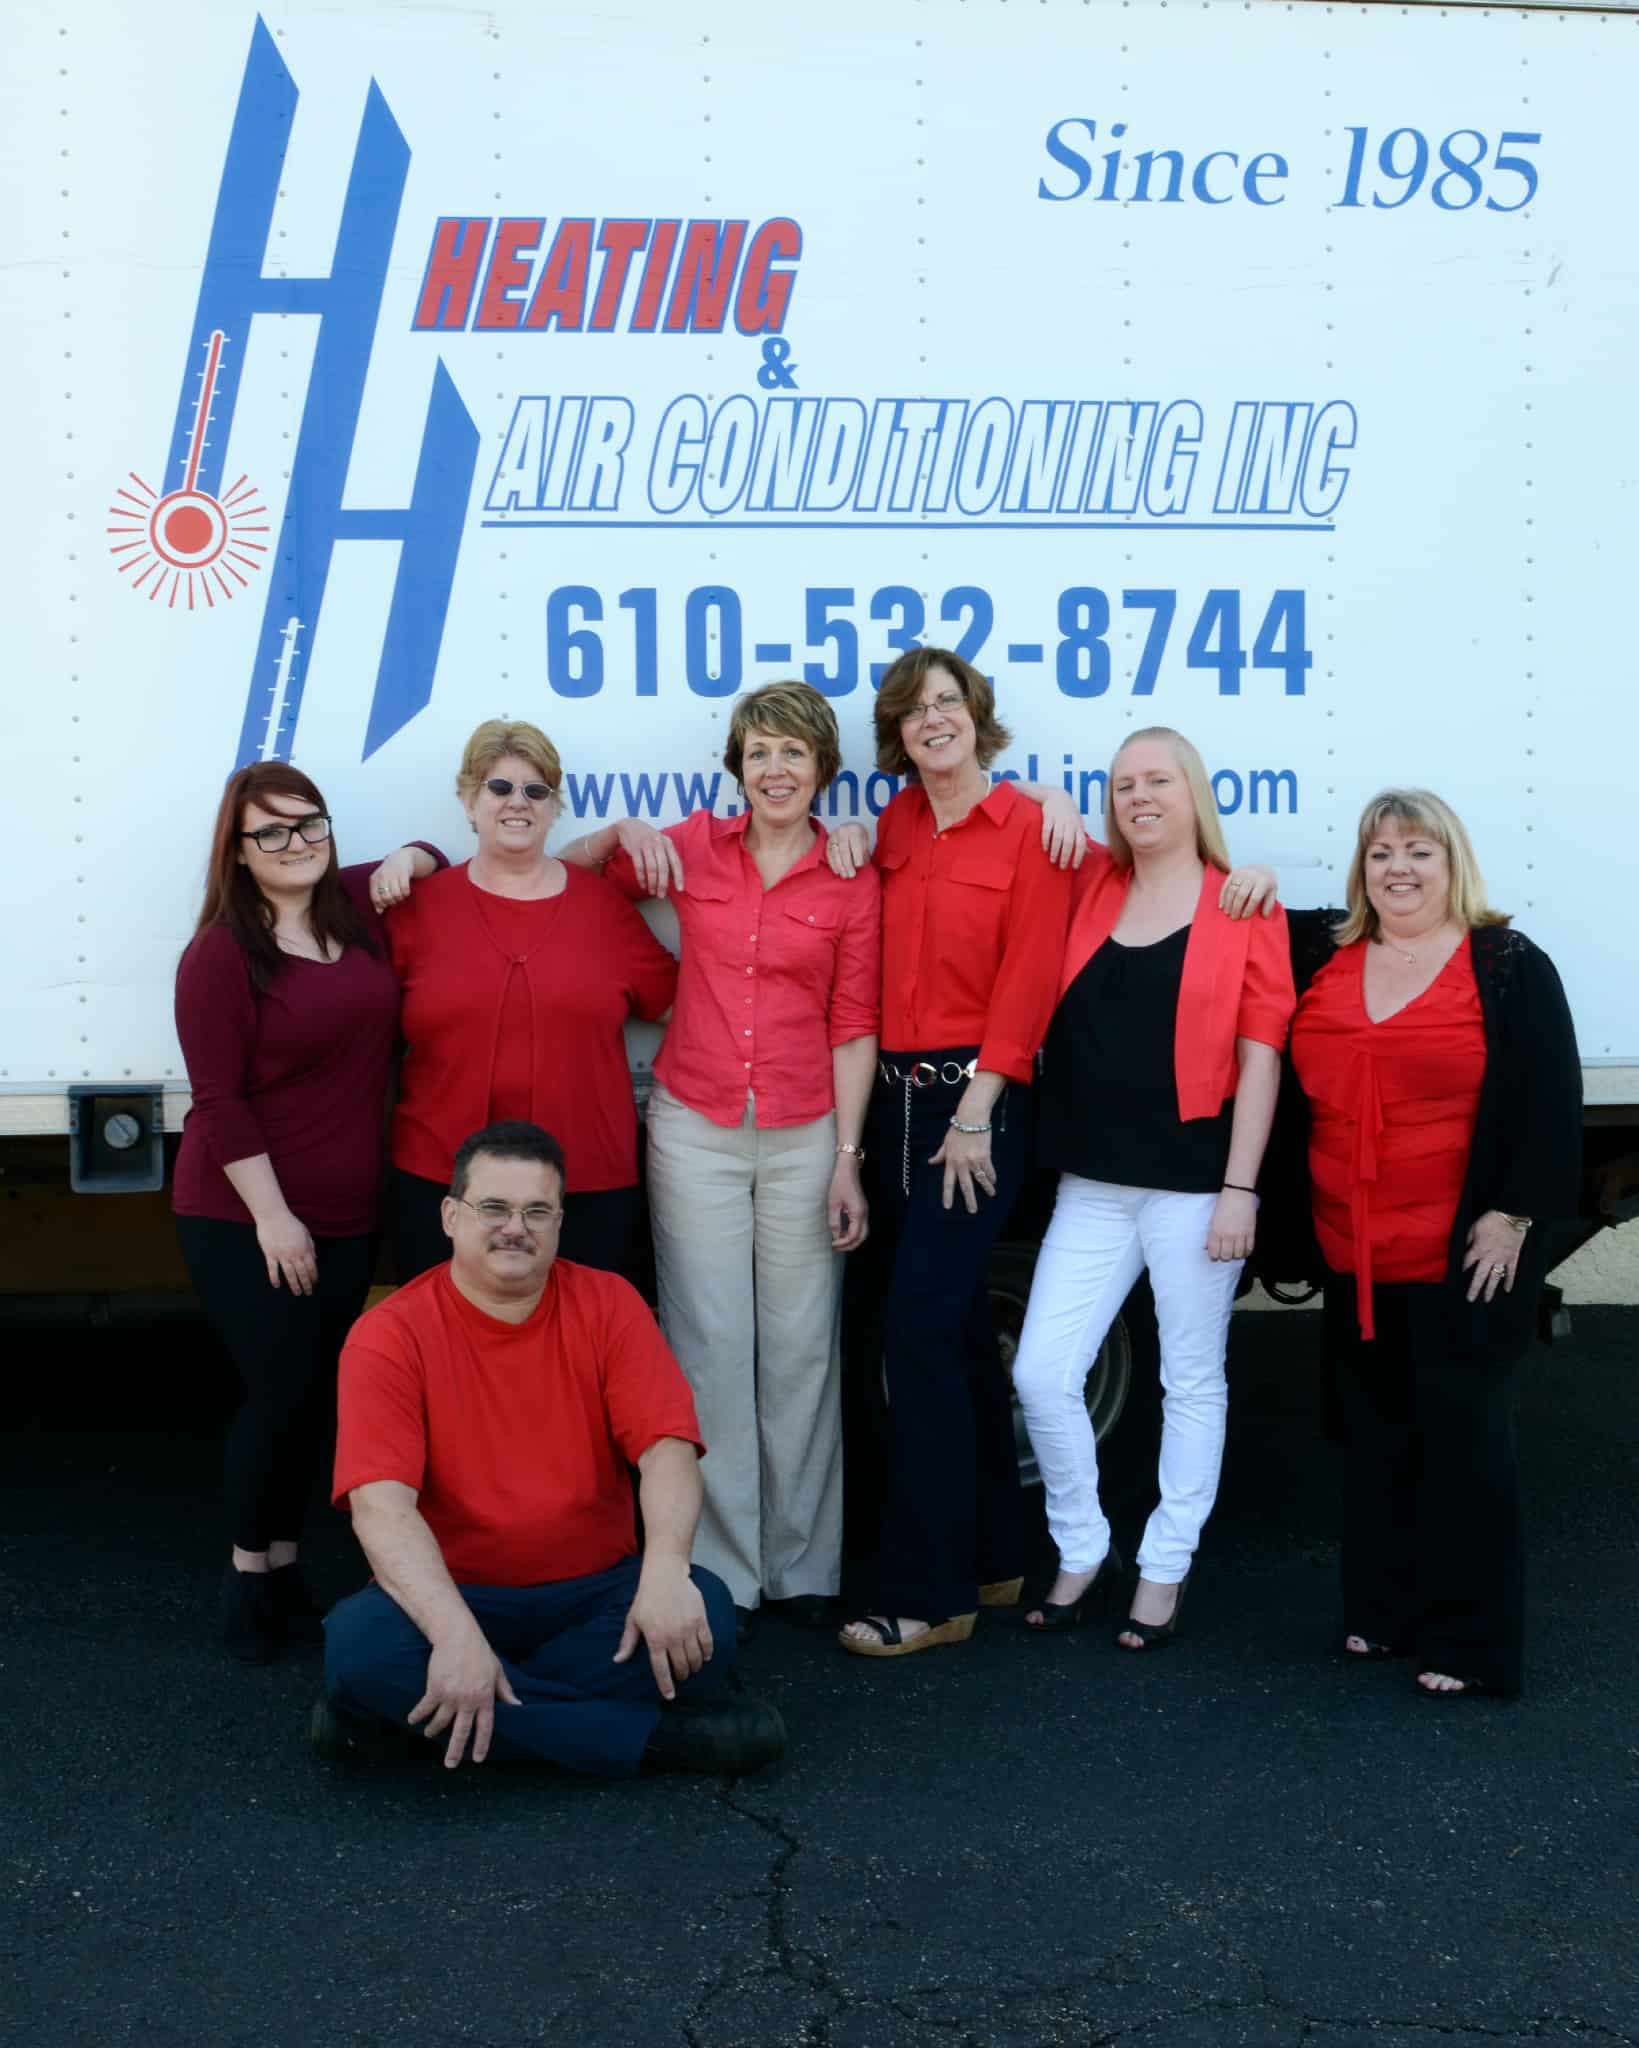 24 7 reliable hvac services in chadds ford